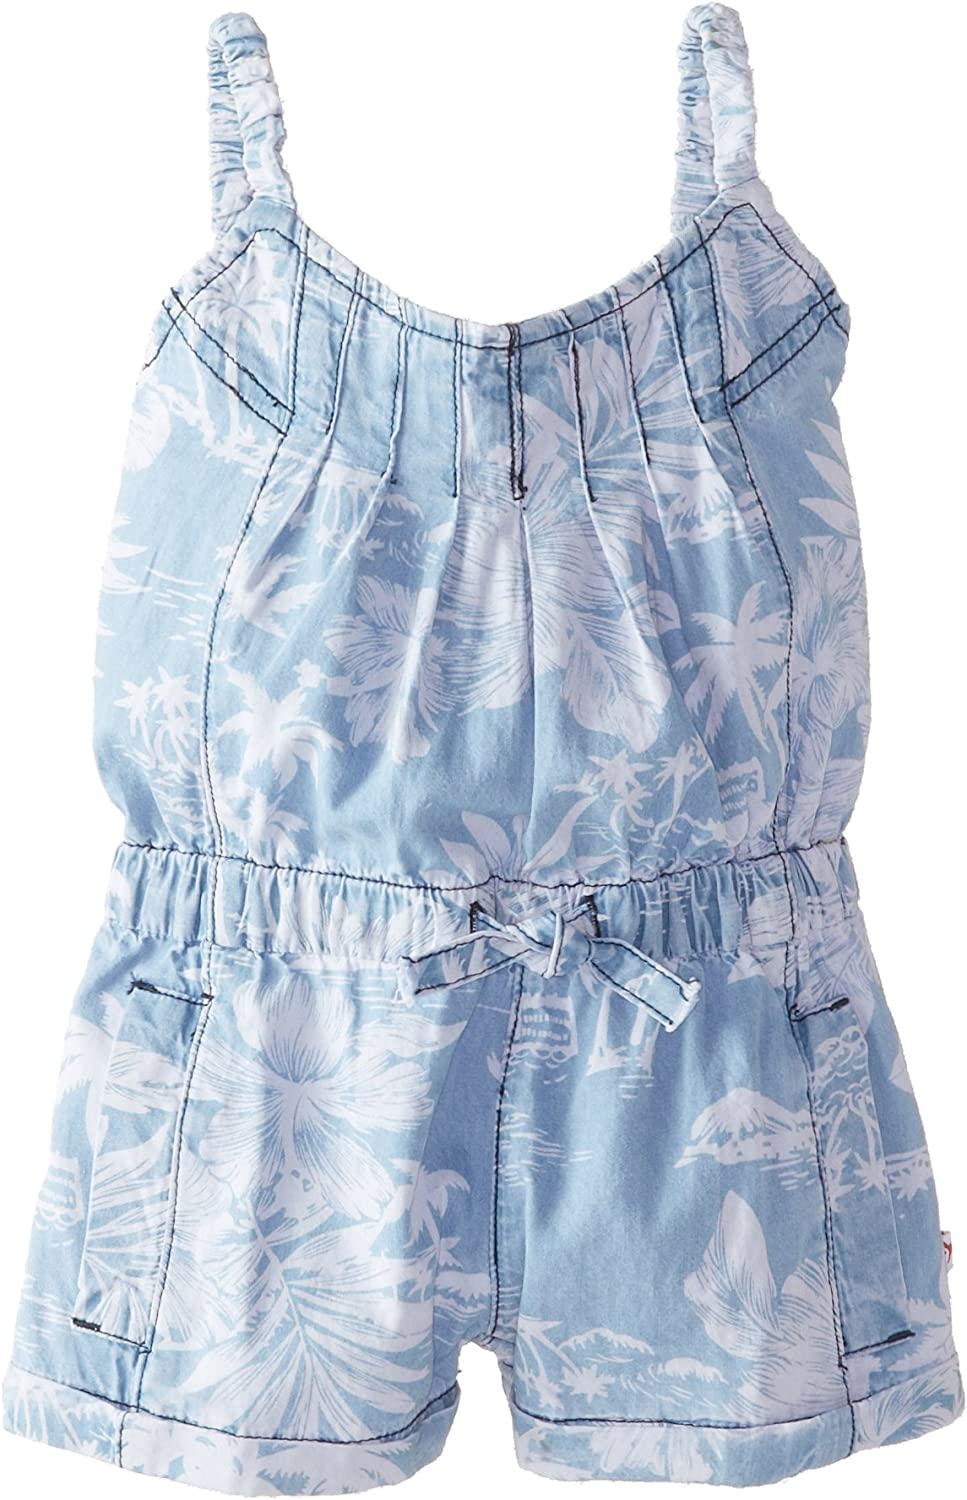 NEW Limited Too Toddler Girls 3T 4T Sleeveless Chambray Denim Dress One Piece